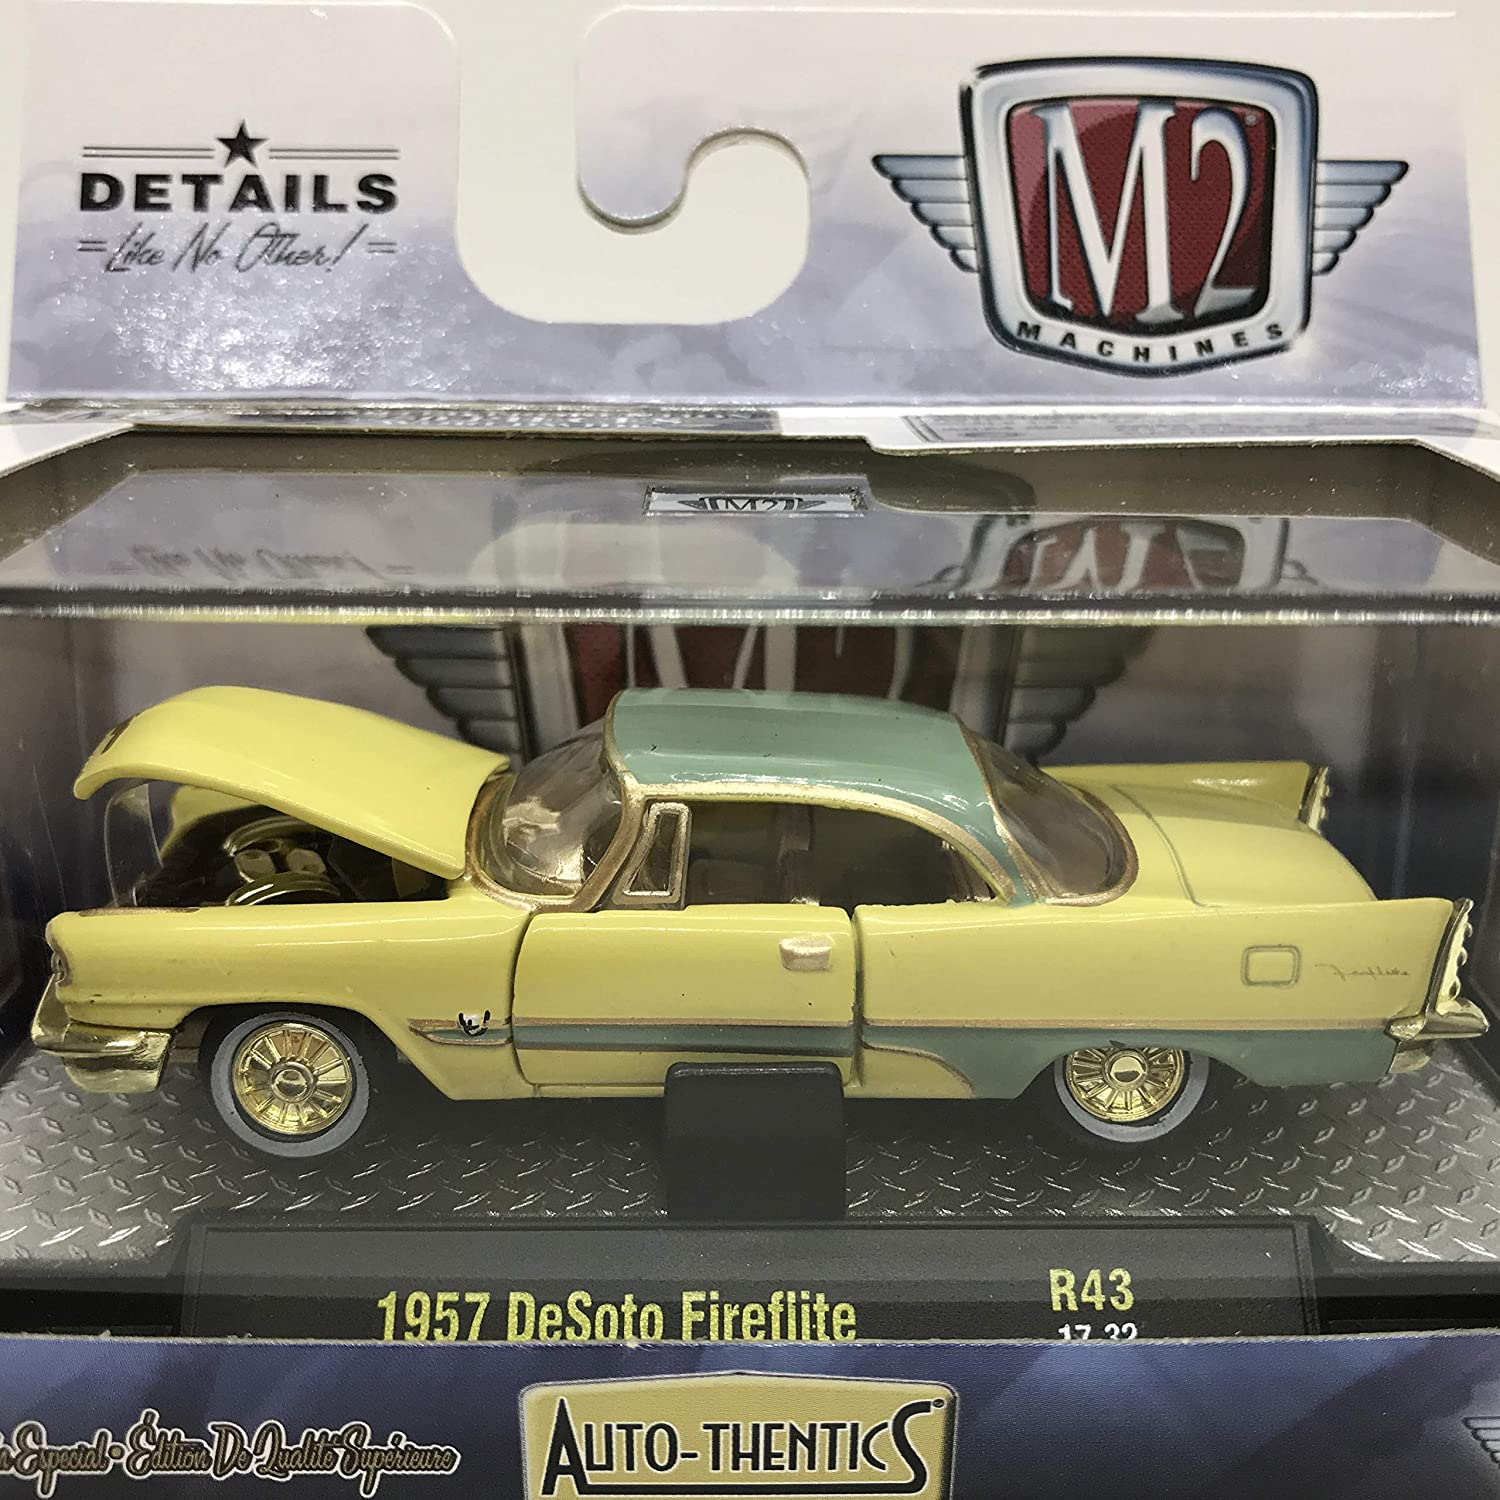 M2 Machines 1 of 750 Worldwide Chase Car with Gold Or Special Wheels & Unique Design Auto-Thentics 1957 DeSoto Fireflite R43 17-32 Yellow/Light Green Details Like NO Other! 1 of 750